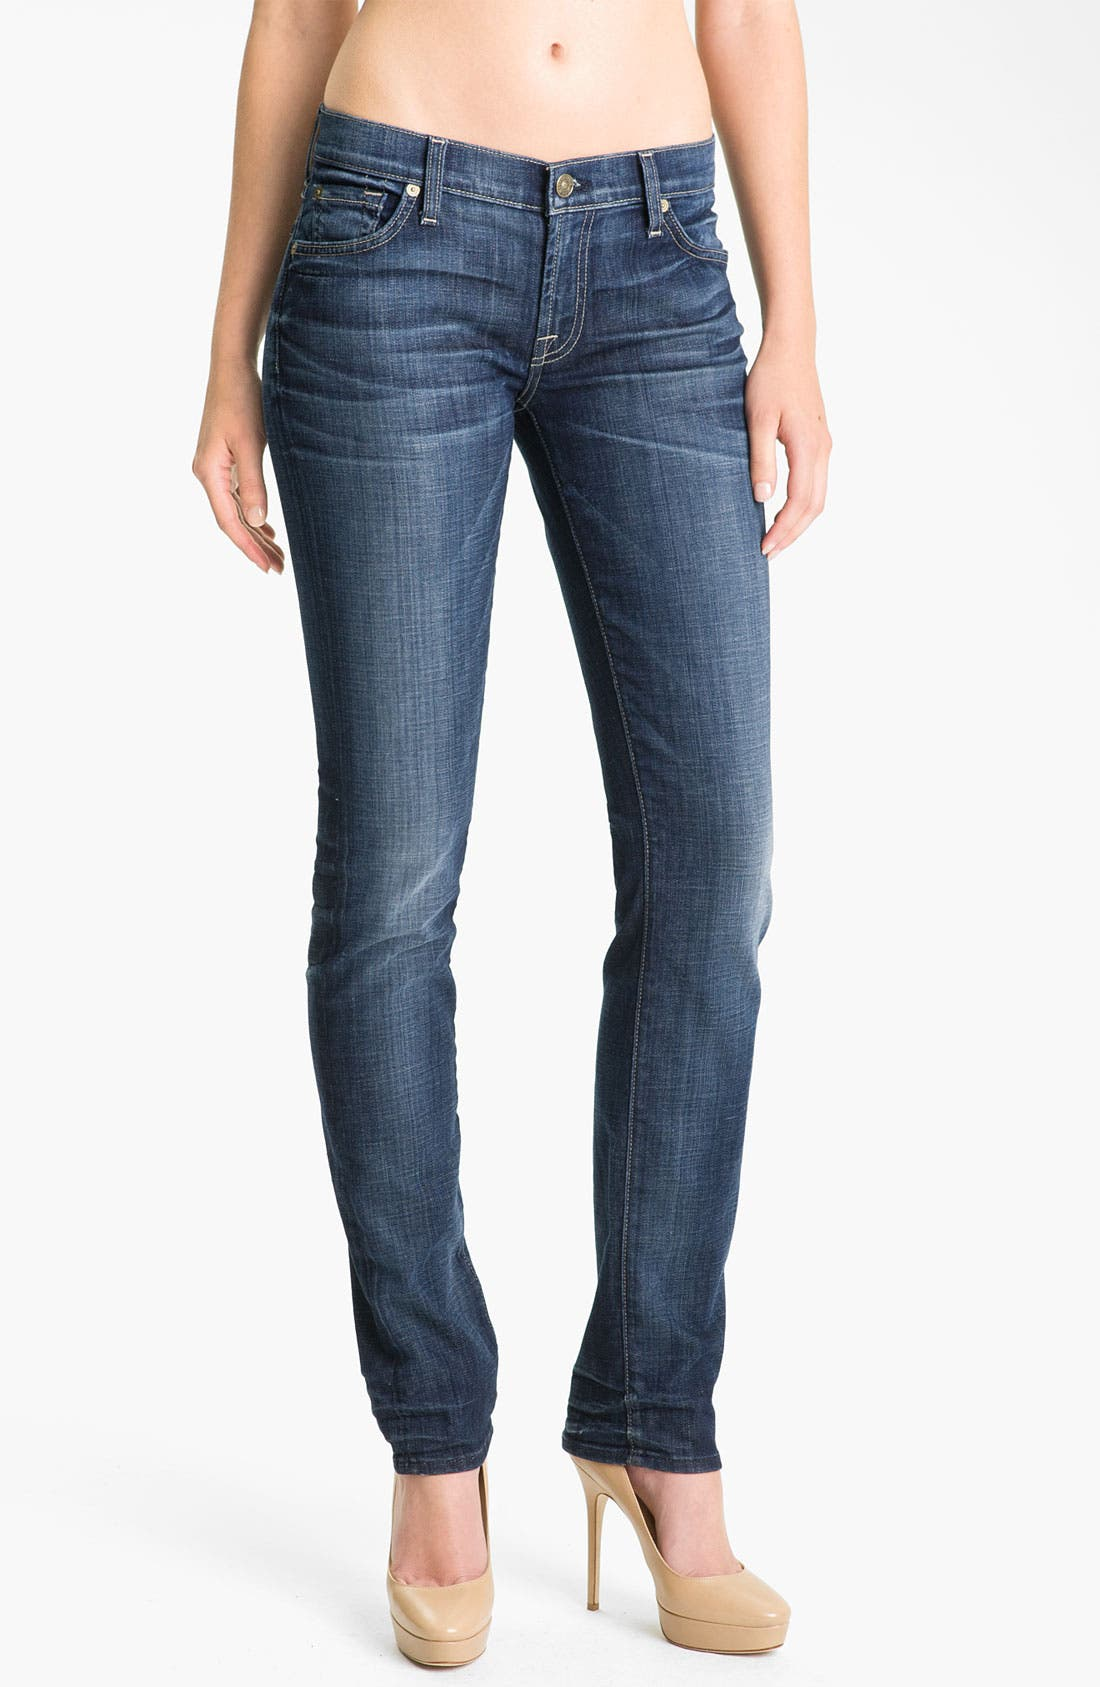 Alternate Image 1 Selected - 7 For All Mankind® 'Roxanne' Straight Leg Jeans (Royal Mountain Valley)